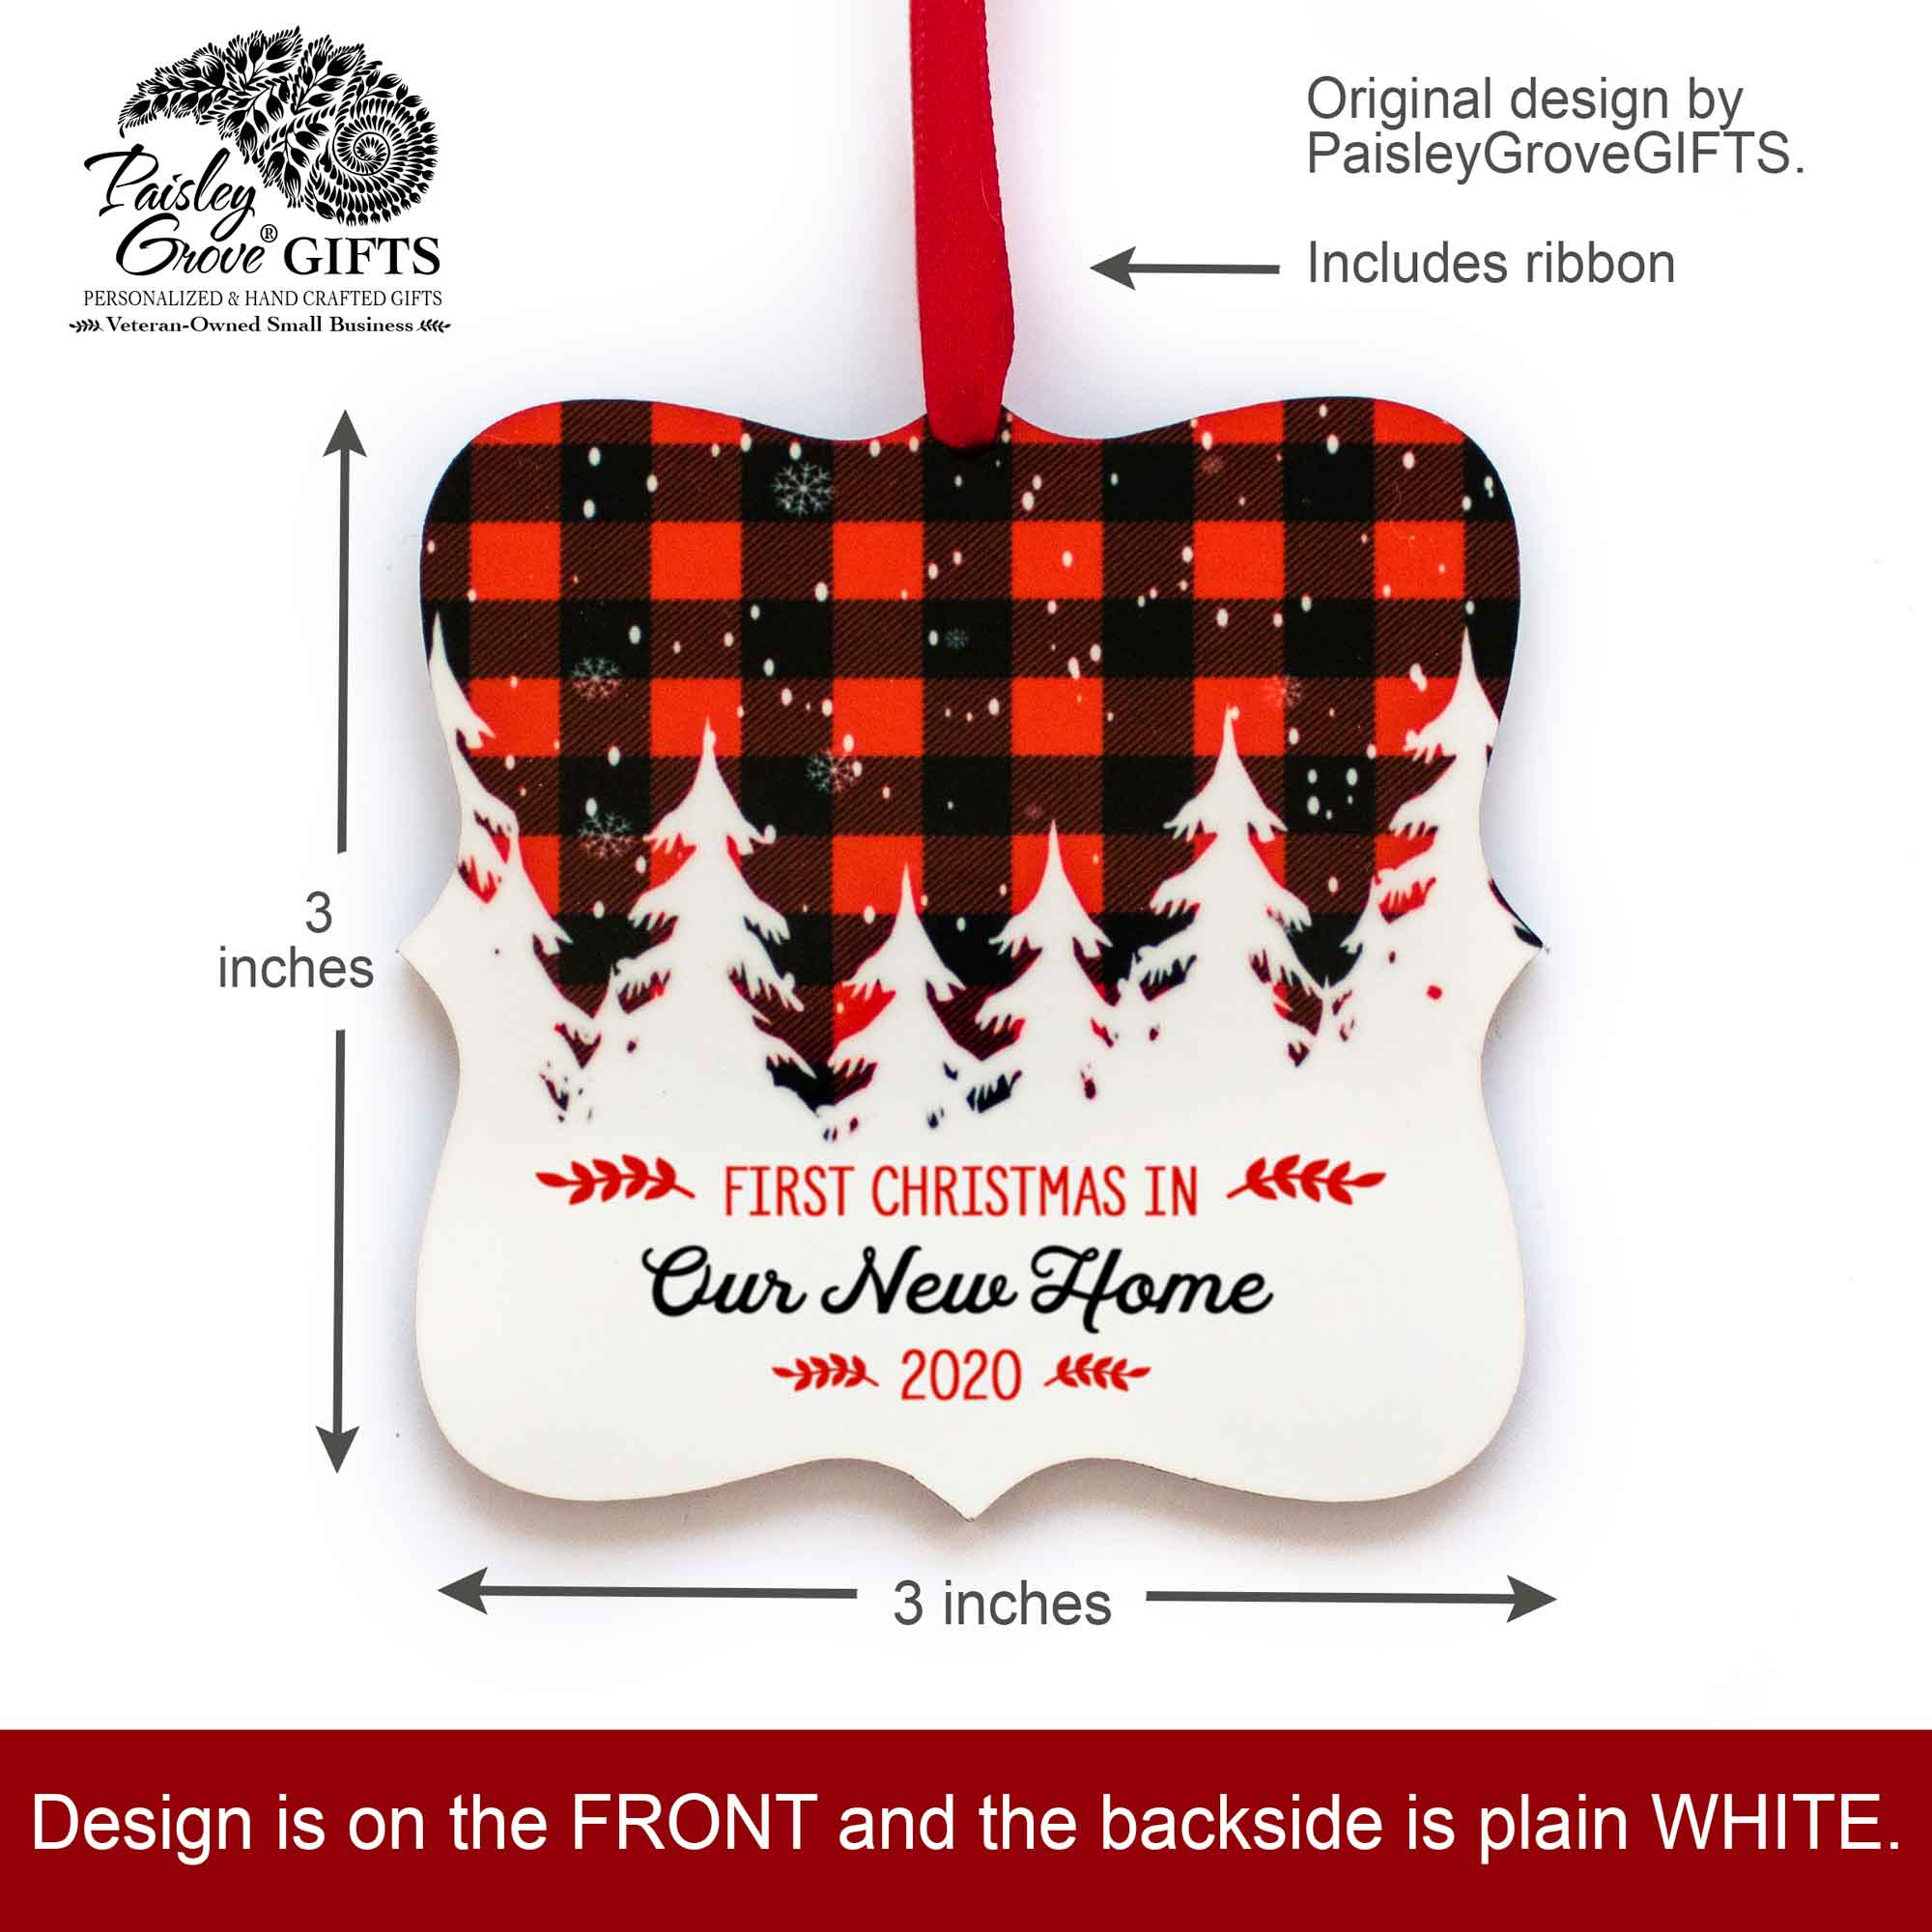 CopyrightPaisleyGroveGIFTS S502e 3x3 inch Holiday Ornament Sentimental Grandparent Keepsake for new grandchild